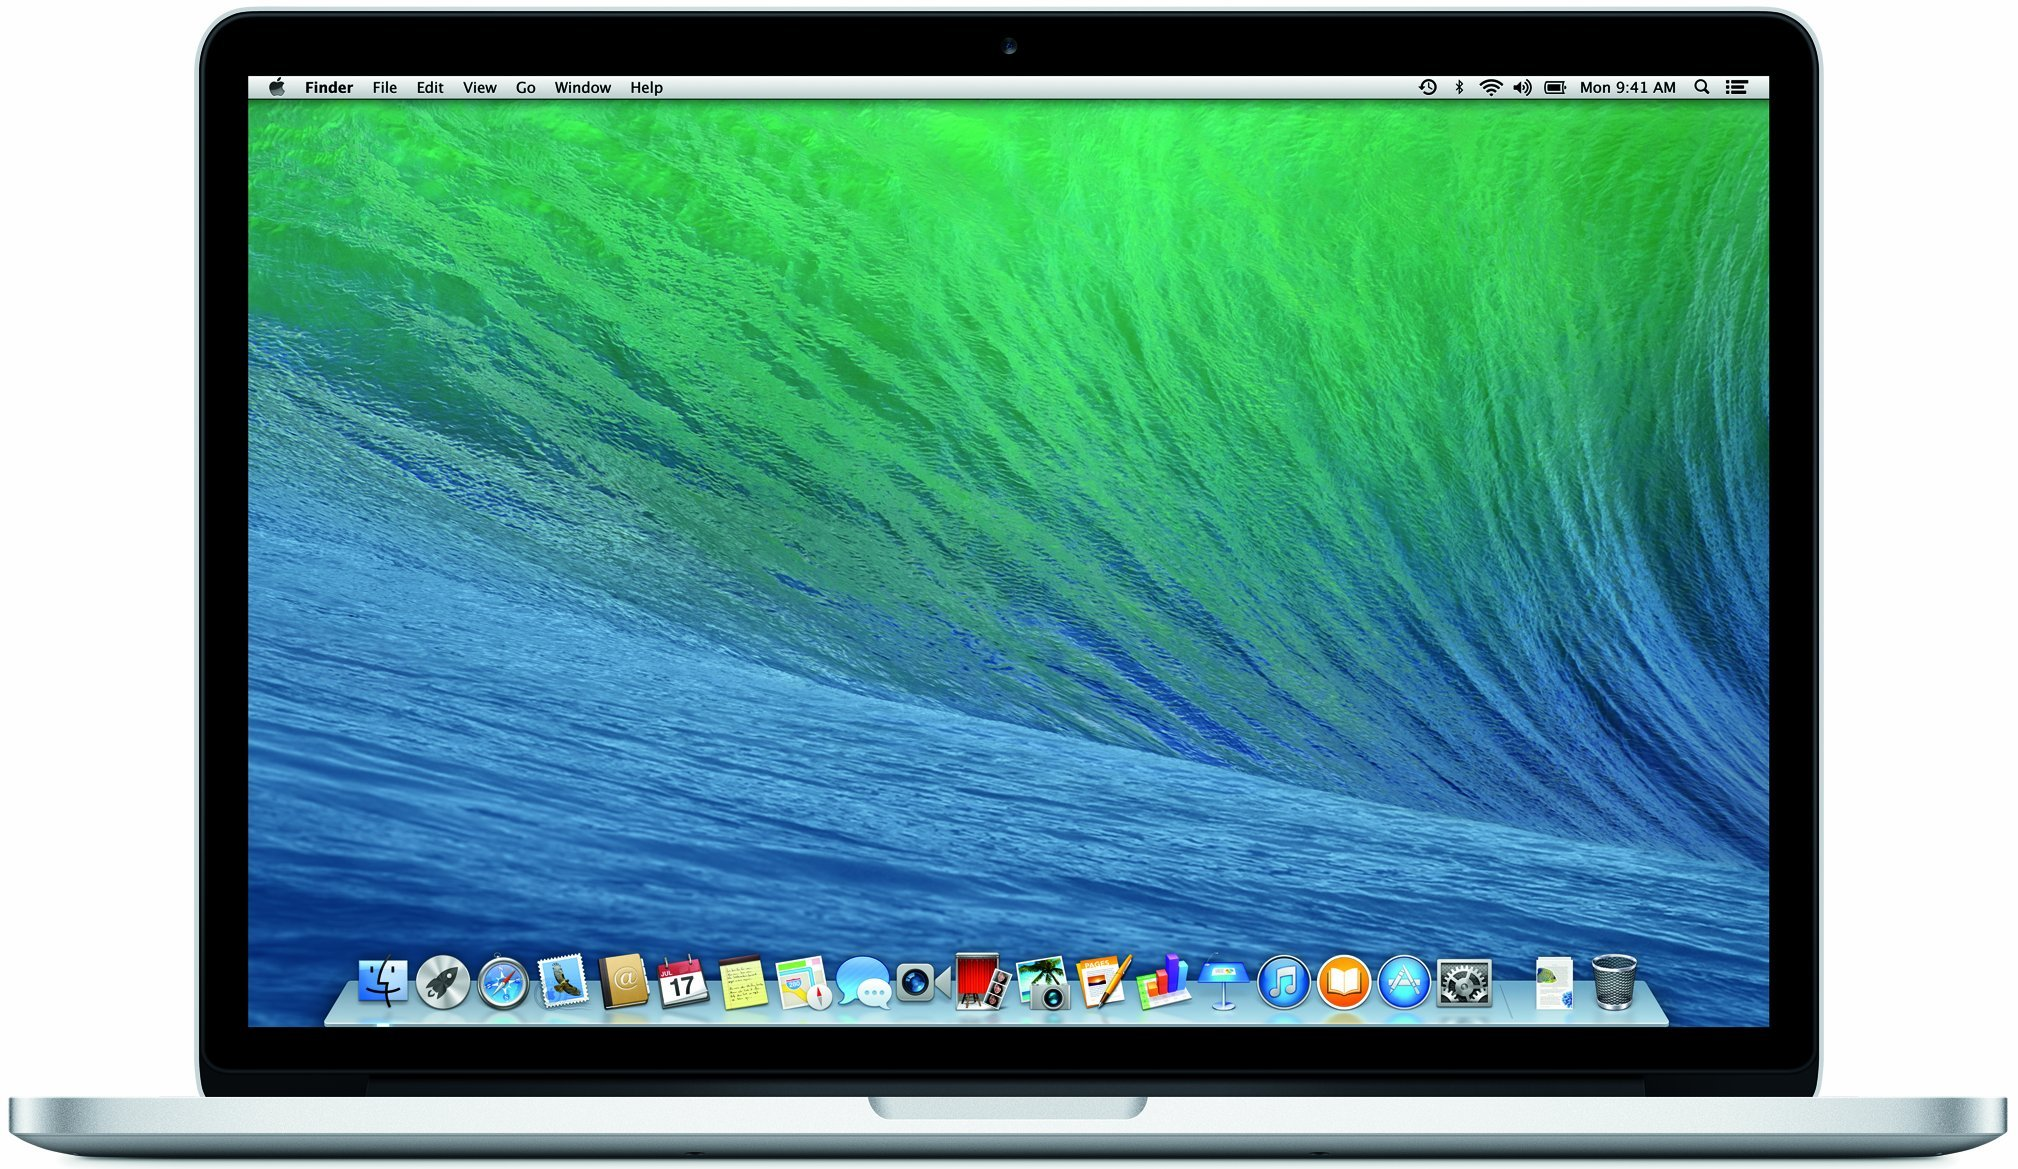 Apple MacBook Pro ME293LL/A 15.4-Inch Laptop with Retina Display (OLD VERSION) (Renewed)